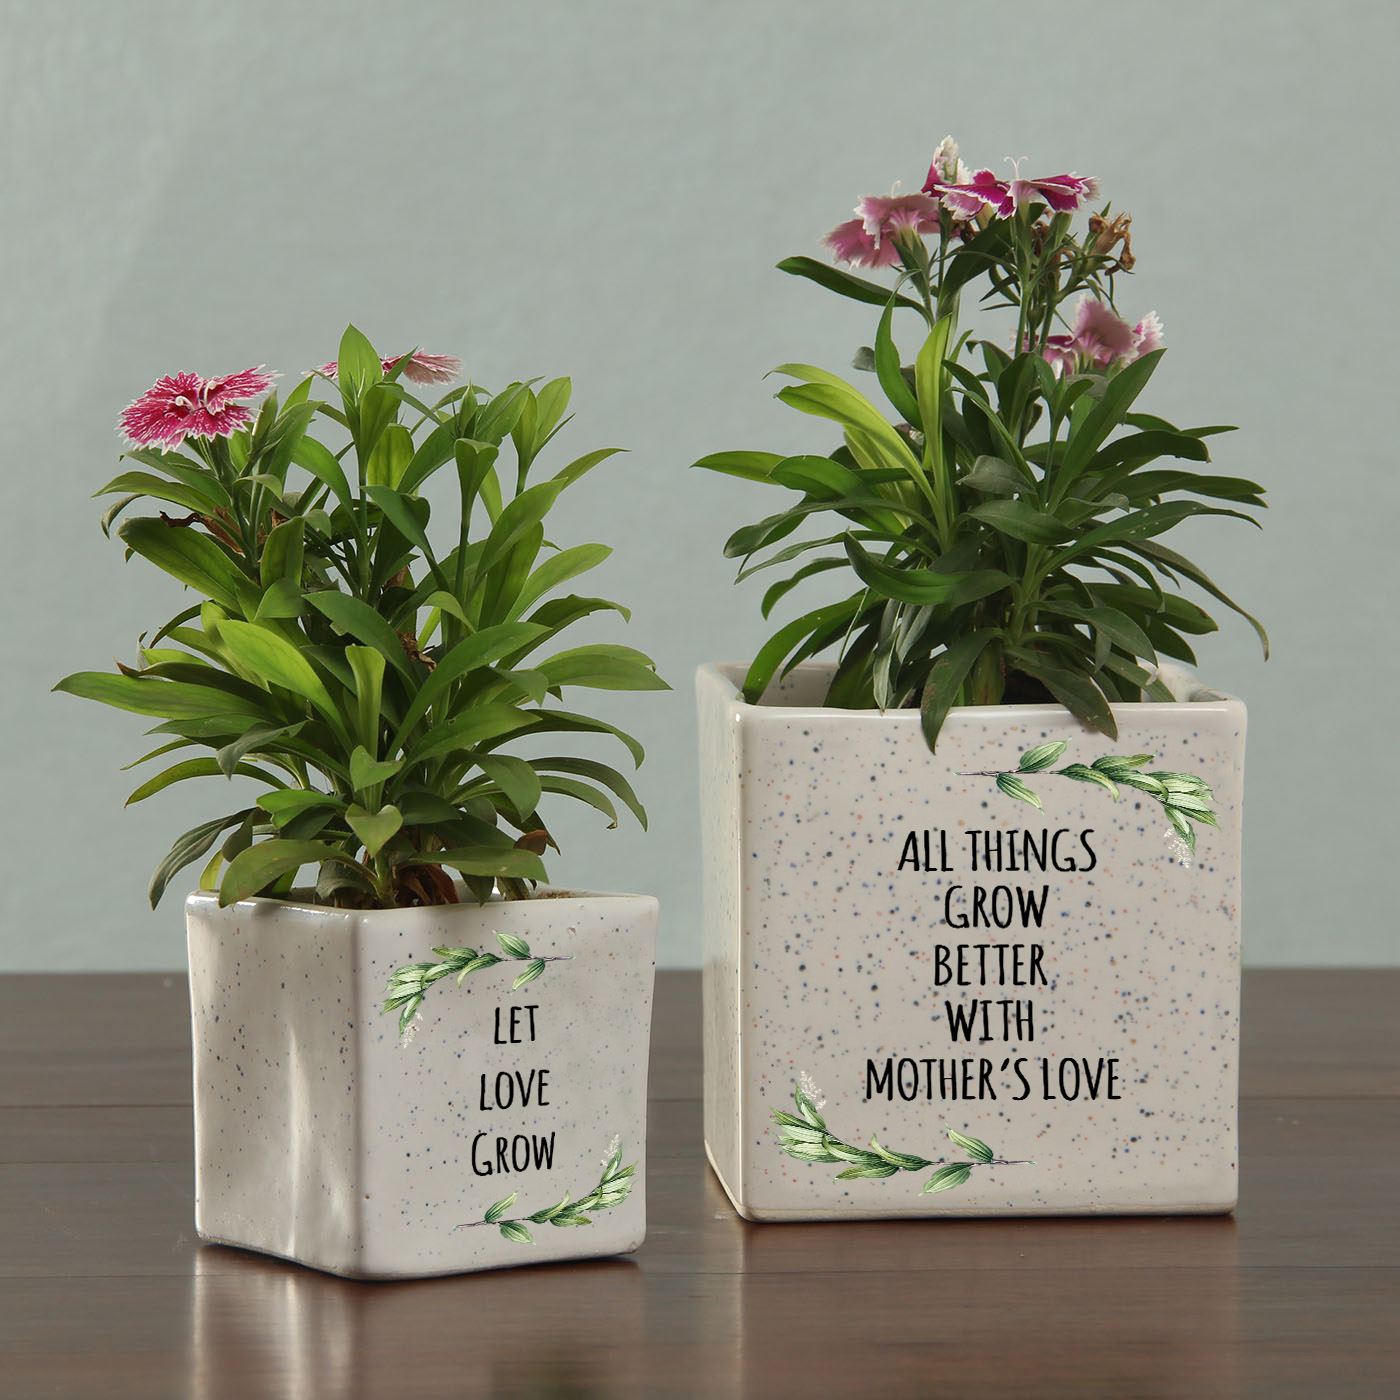 Personalized Ceramic Planters set for Mom